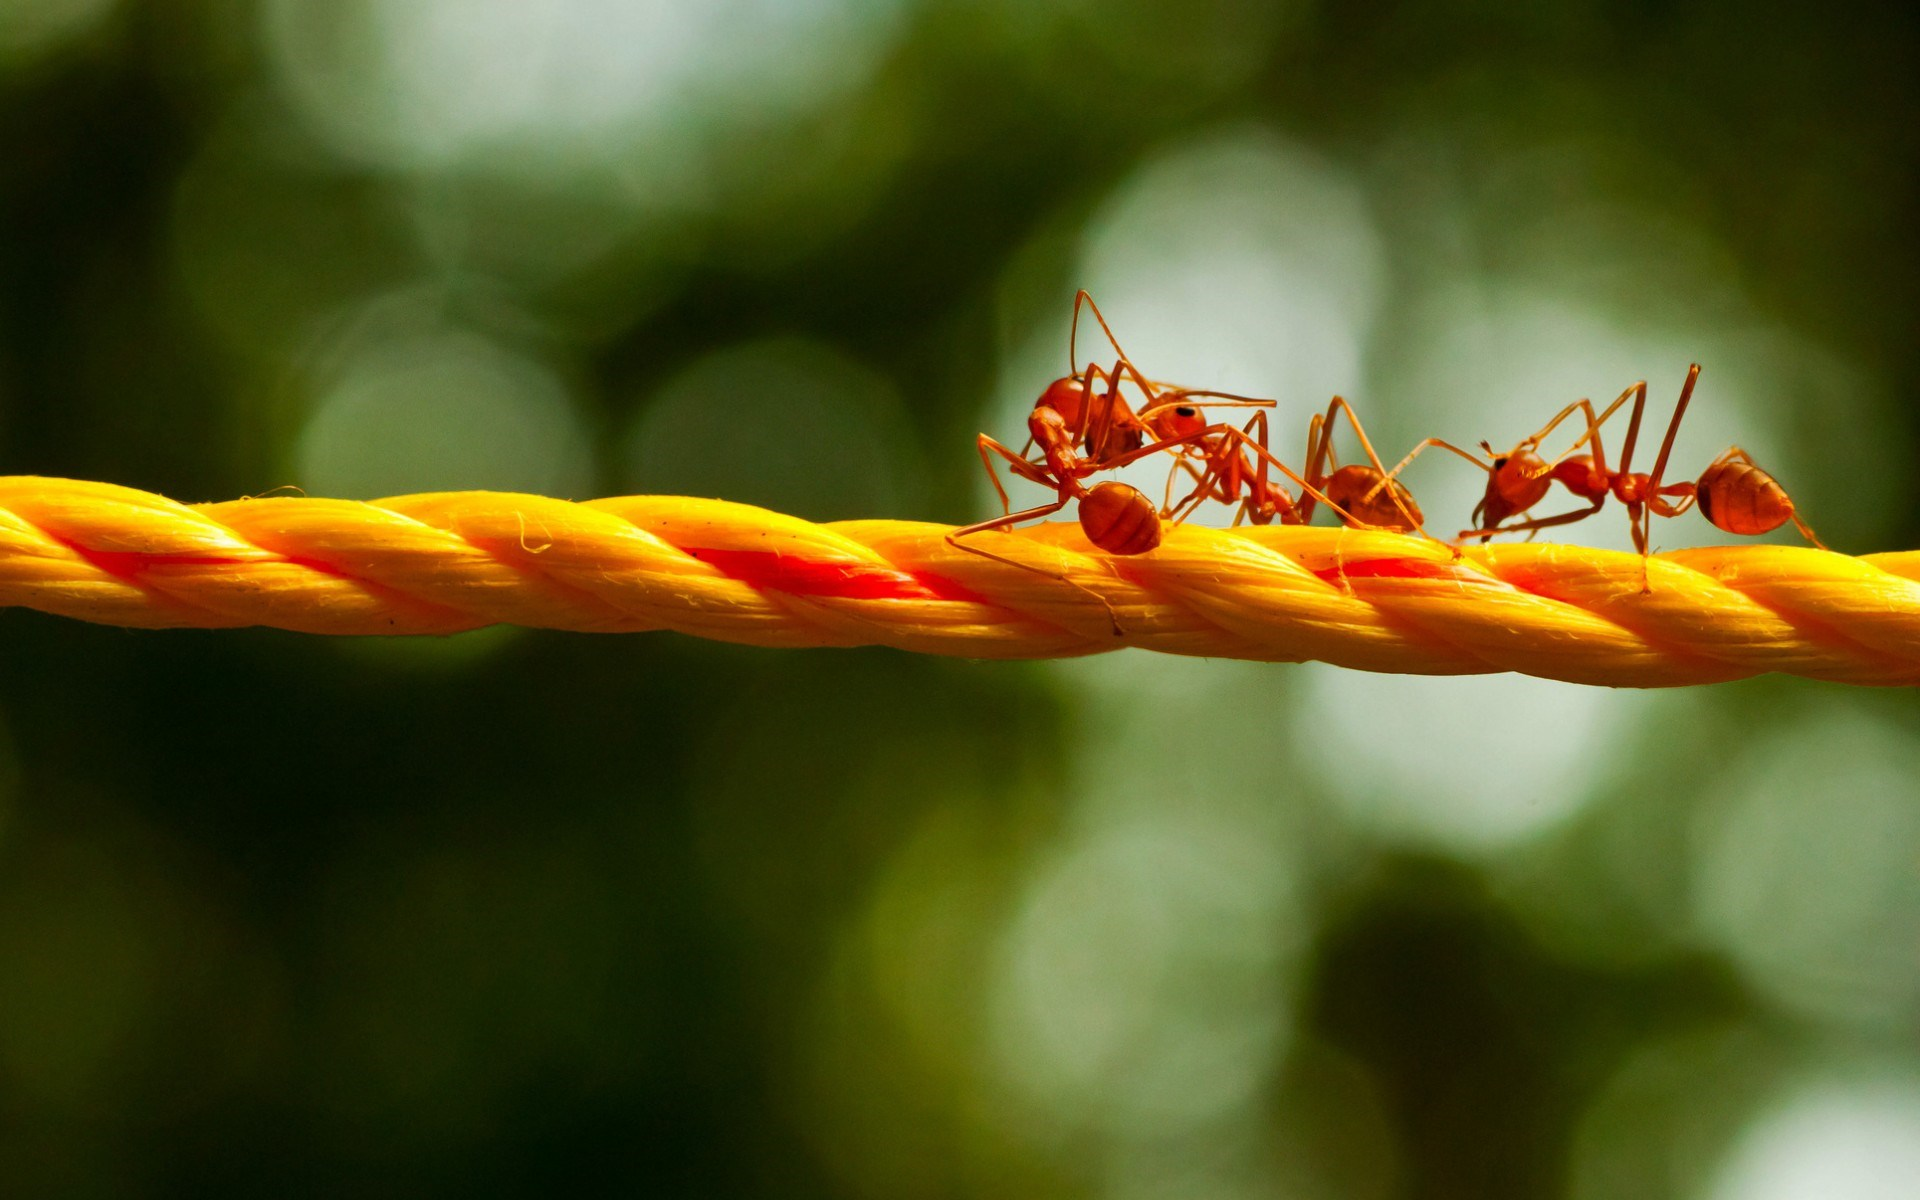 Close Up Rope Red Ants HD Wallpaper